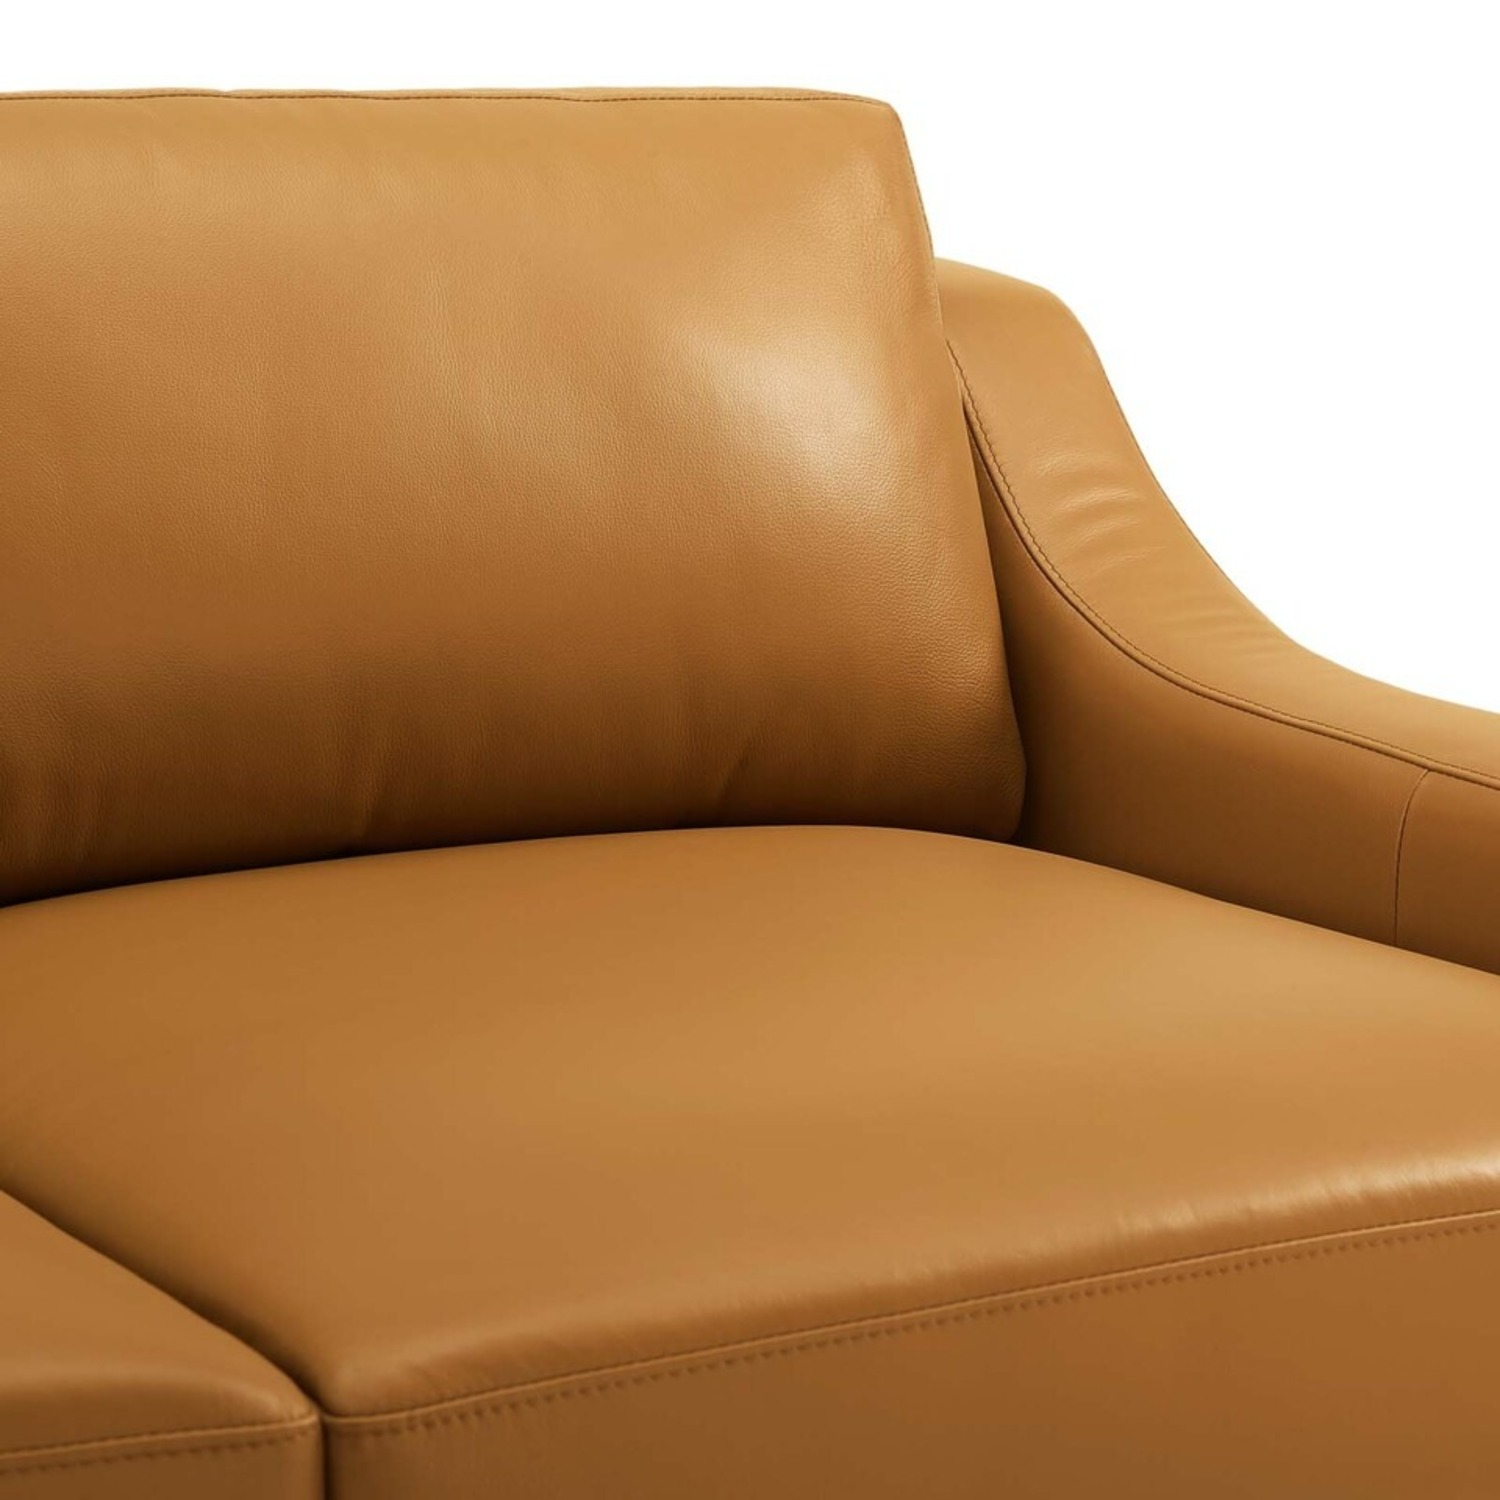 Sofa In Tan Leather Upholstery W/ Steel Base - image-4